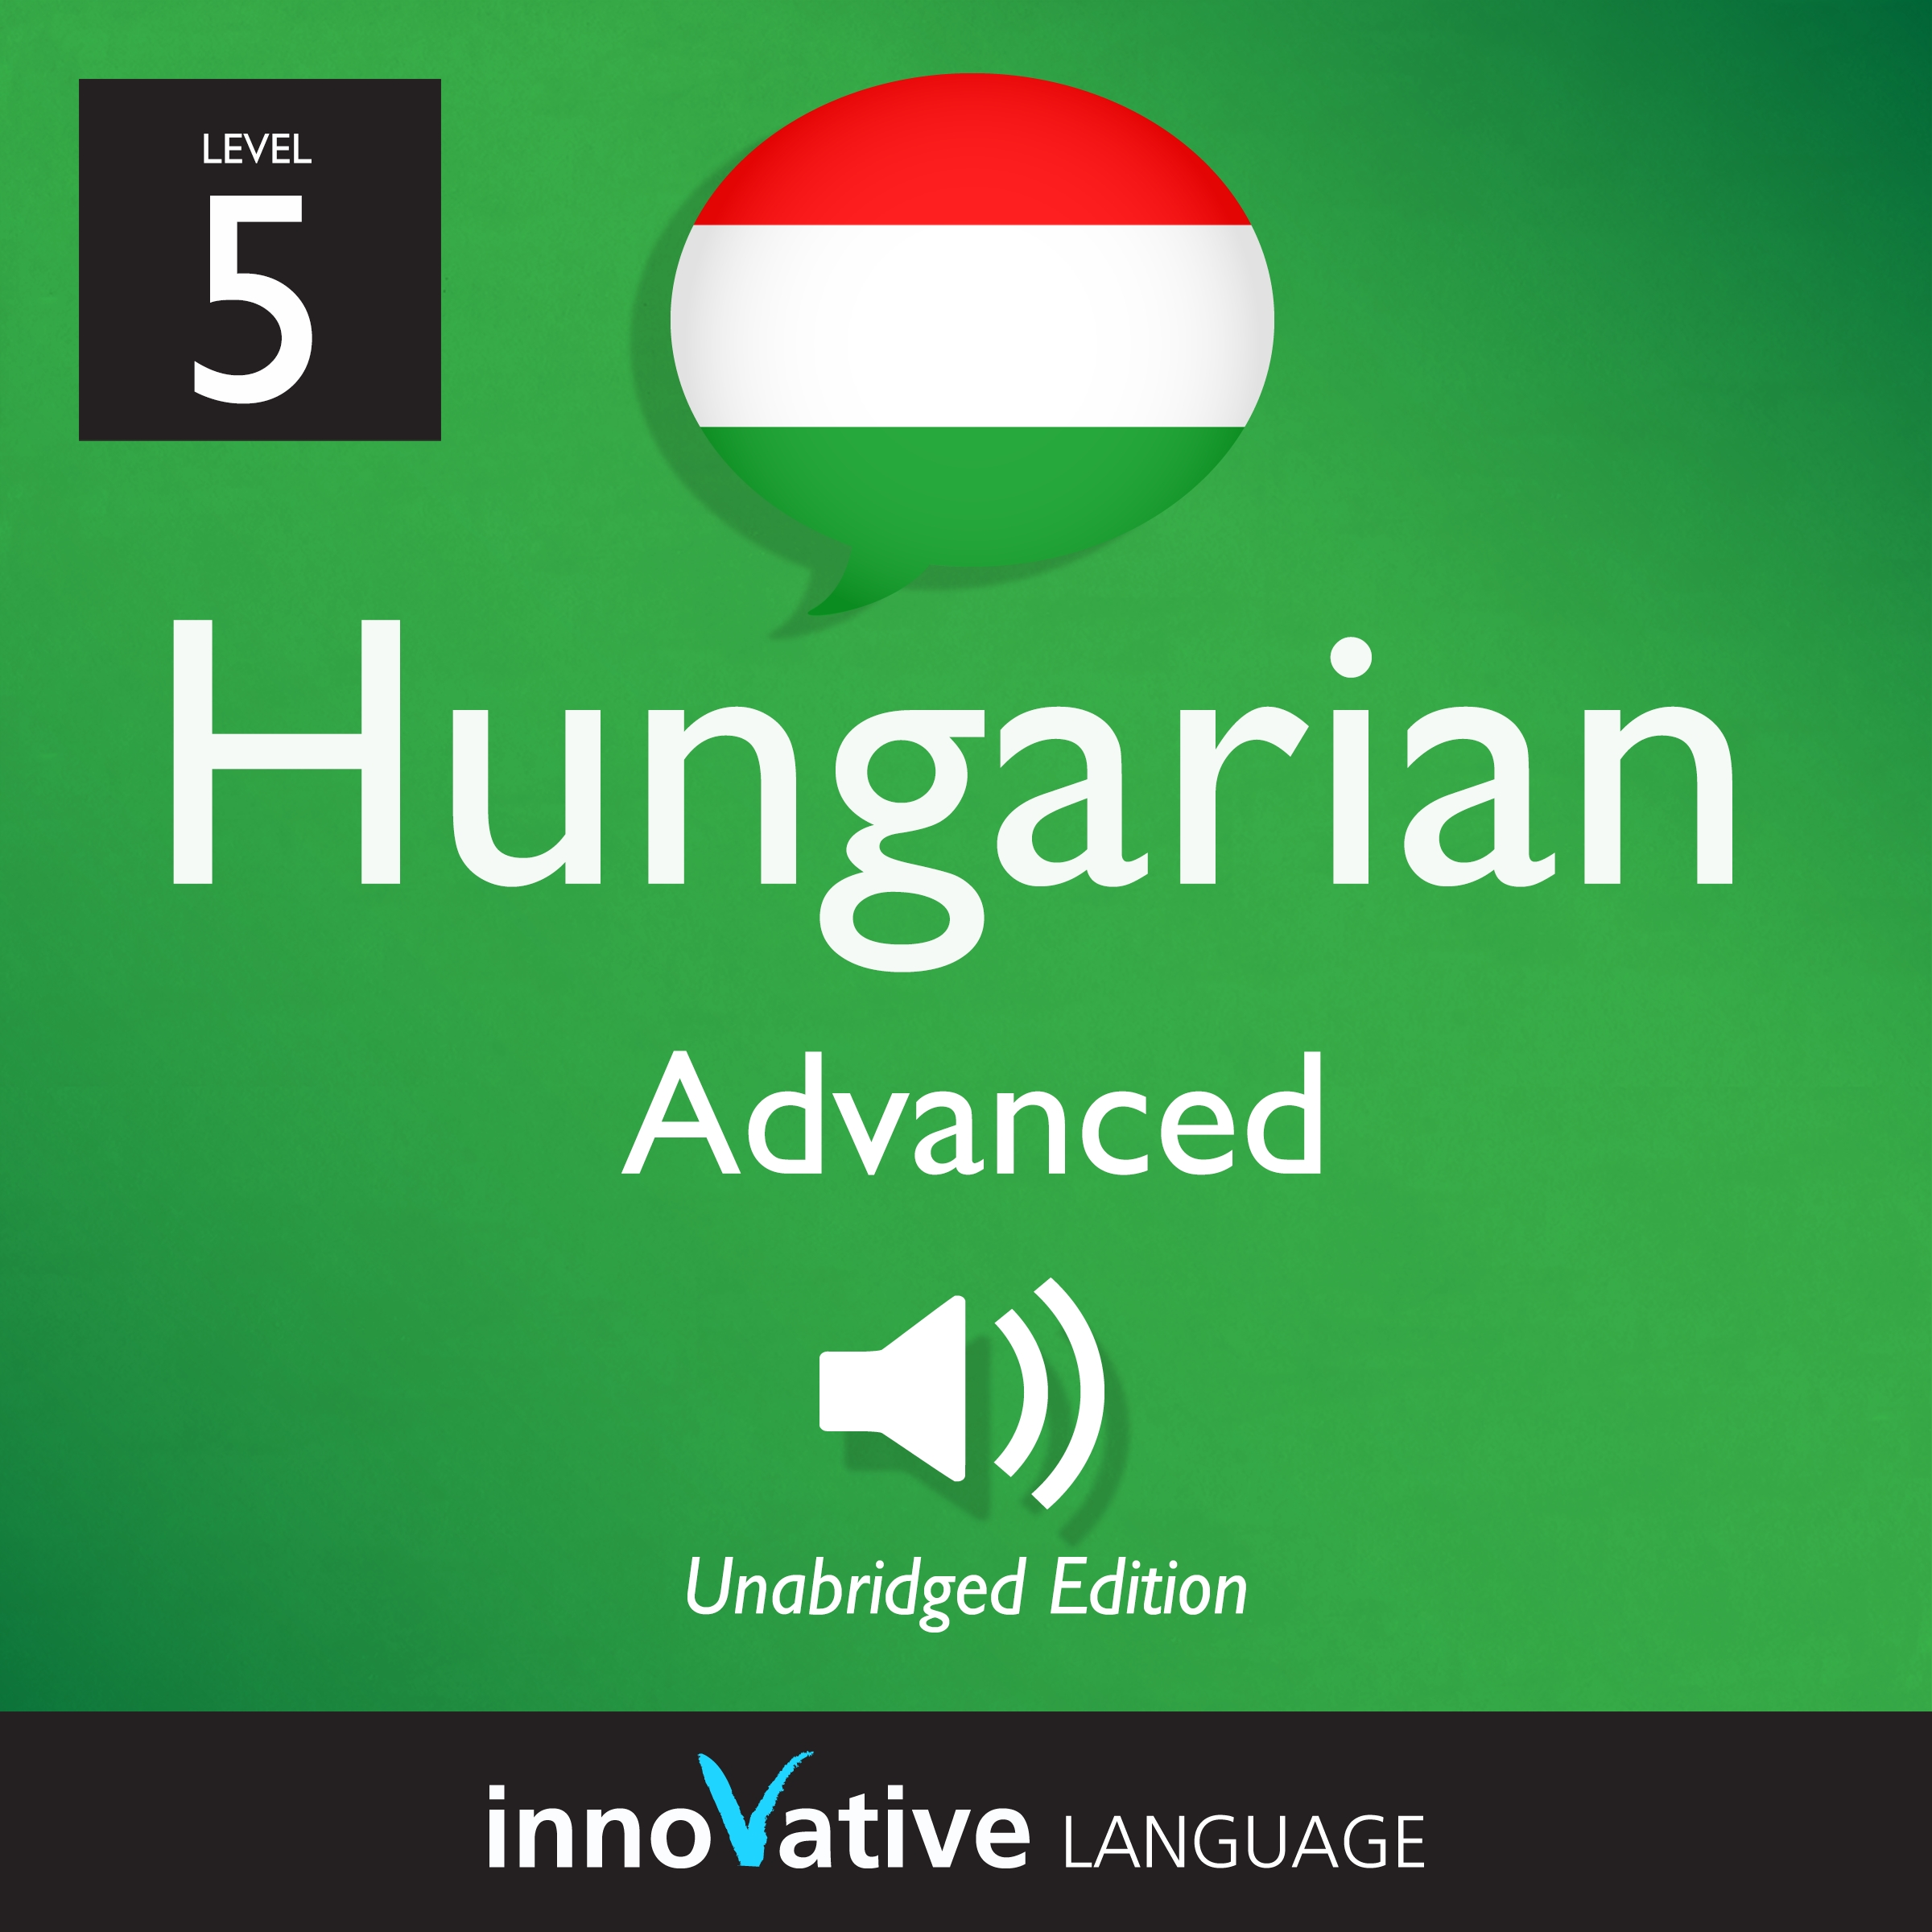 [Audiobook] Learn Hungarian - Level 5: Advanced Hungarian, Volume 1